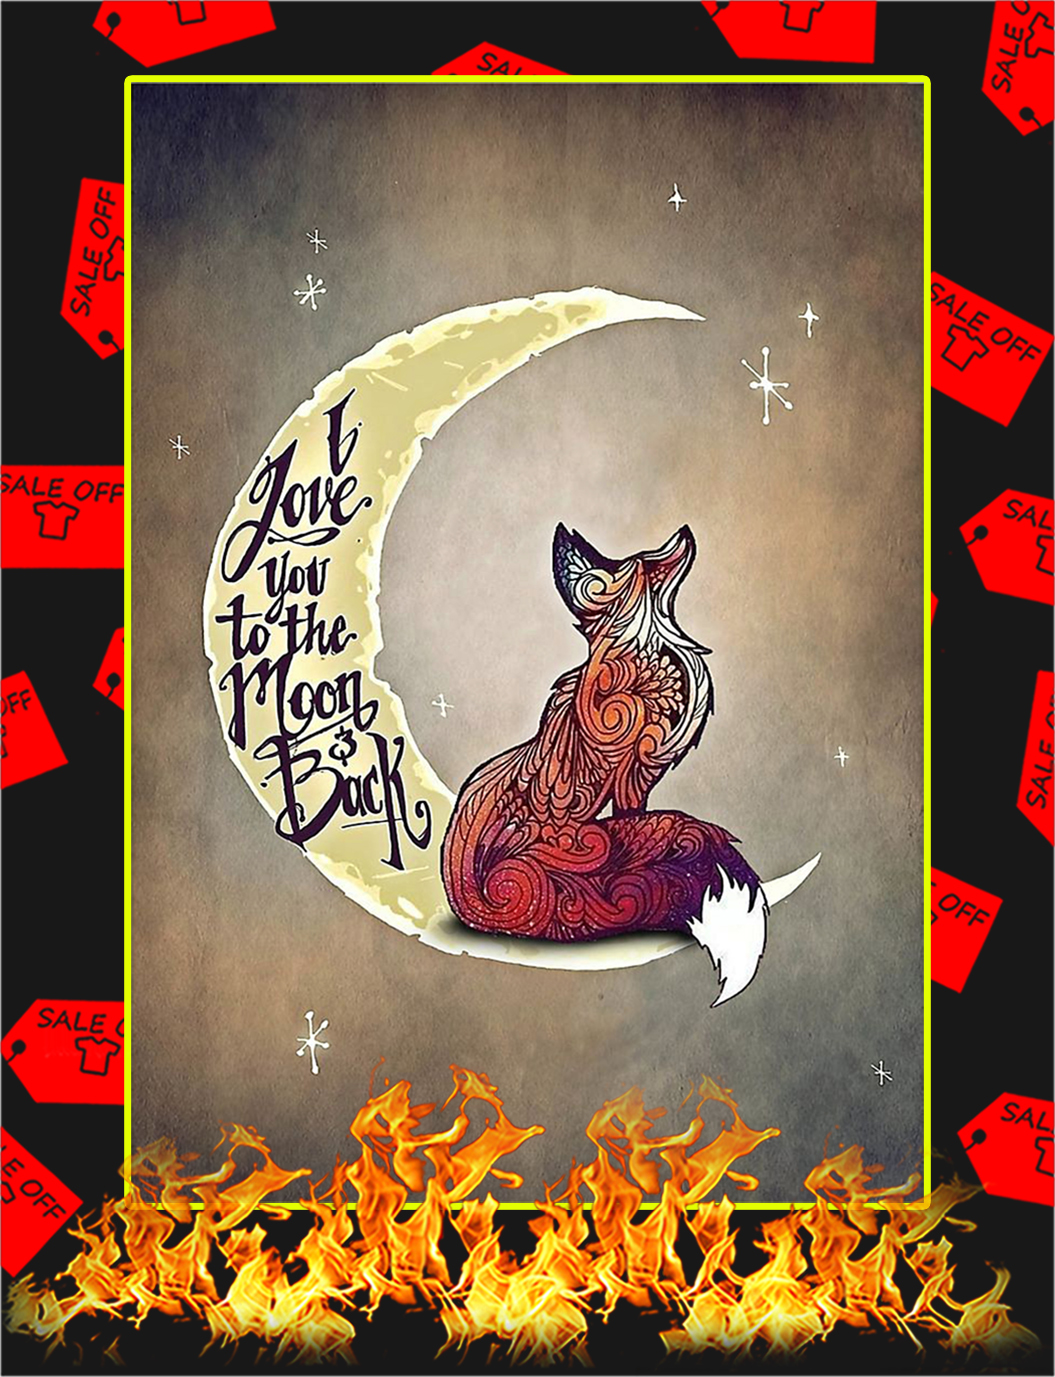 Fox I Love You To The Moon And Back Poster - A4